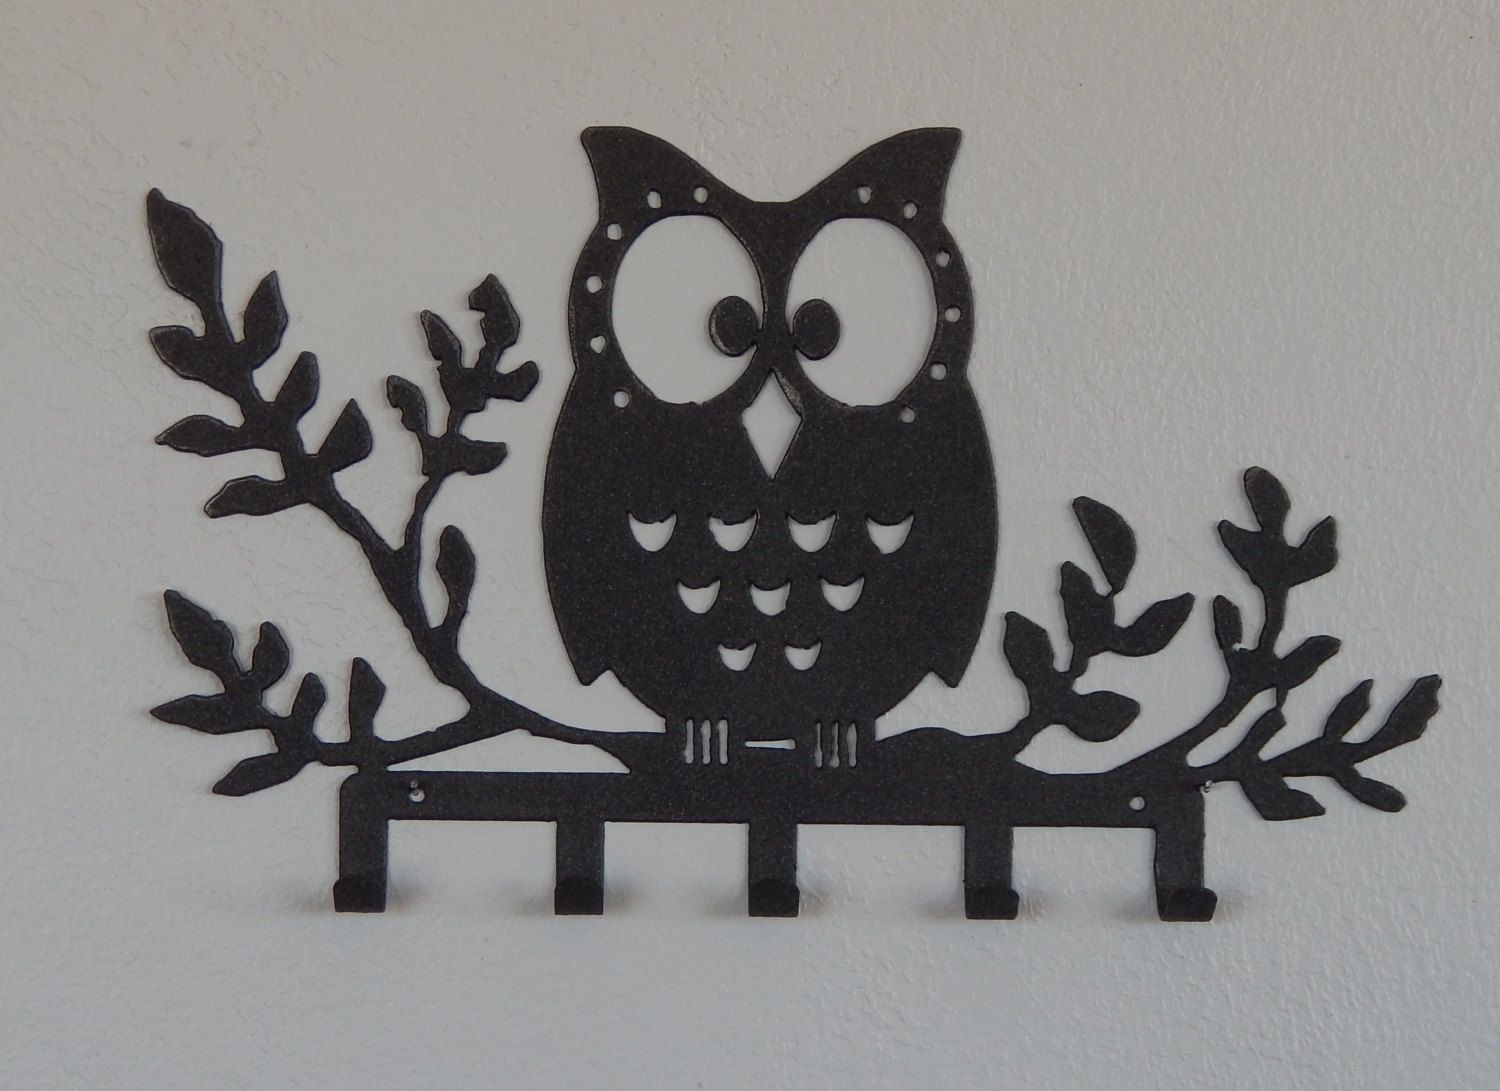 Key holderowl key rack key organizerjewelry holder wall key holderowl key rack key organizerjewelry holder walldecorative owlswall artkitchen wall hookbedroom decorkey rackcincture amipublicfo Gallery